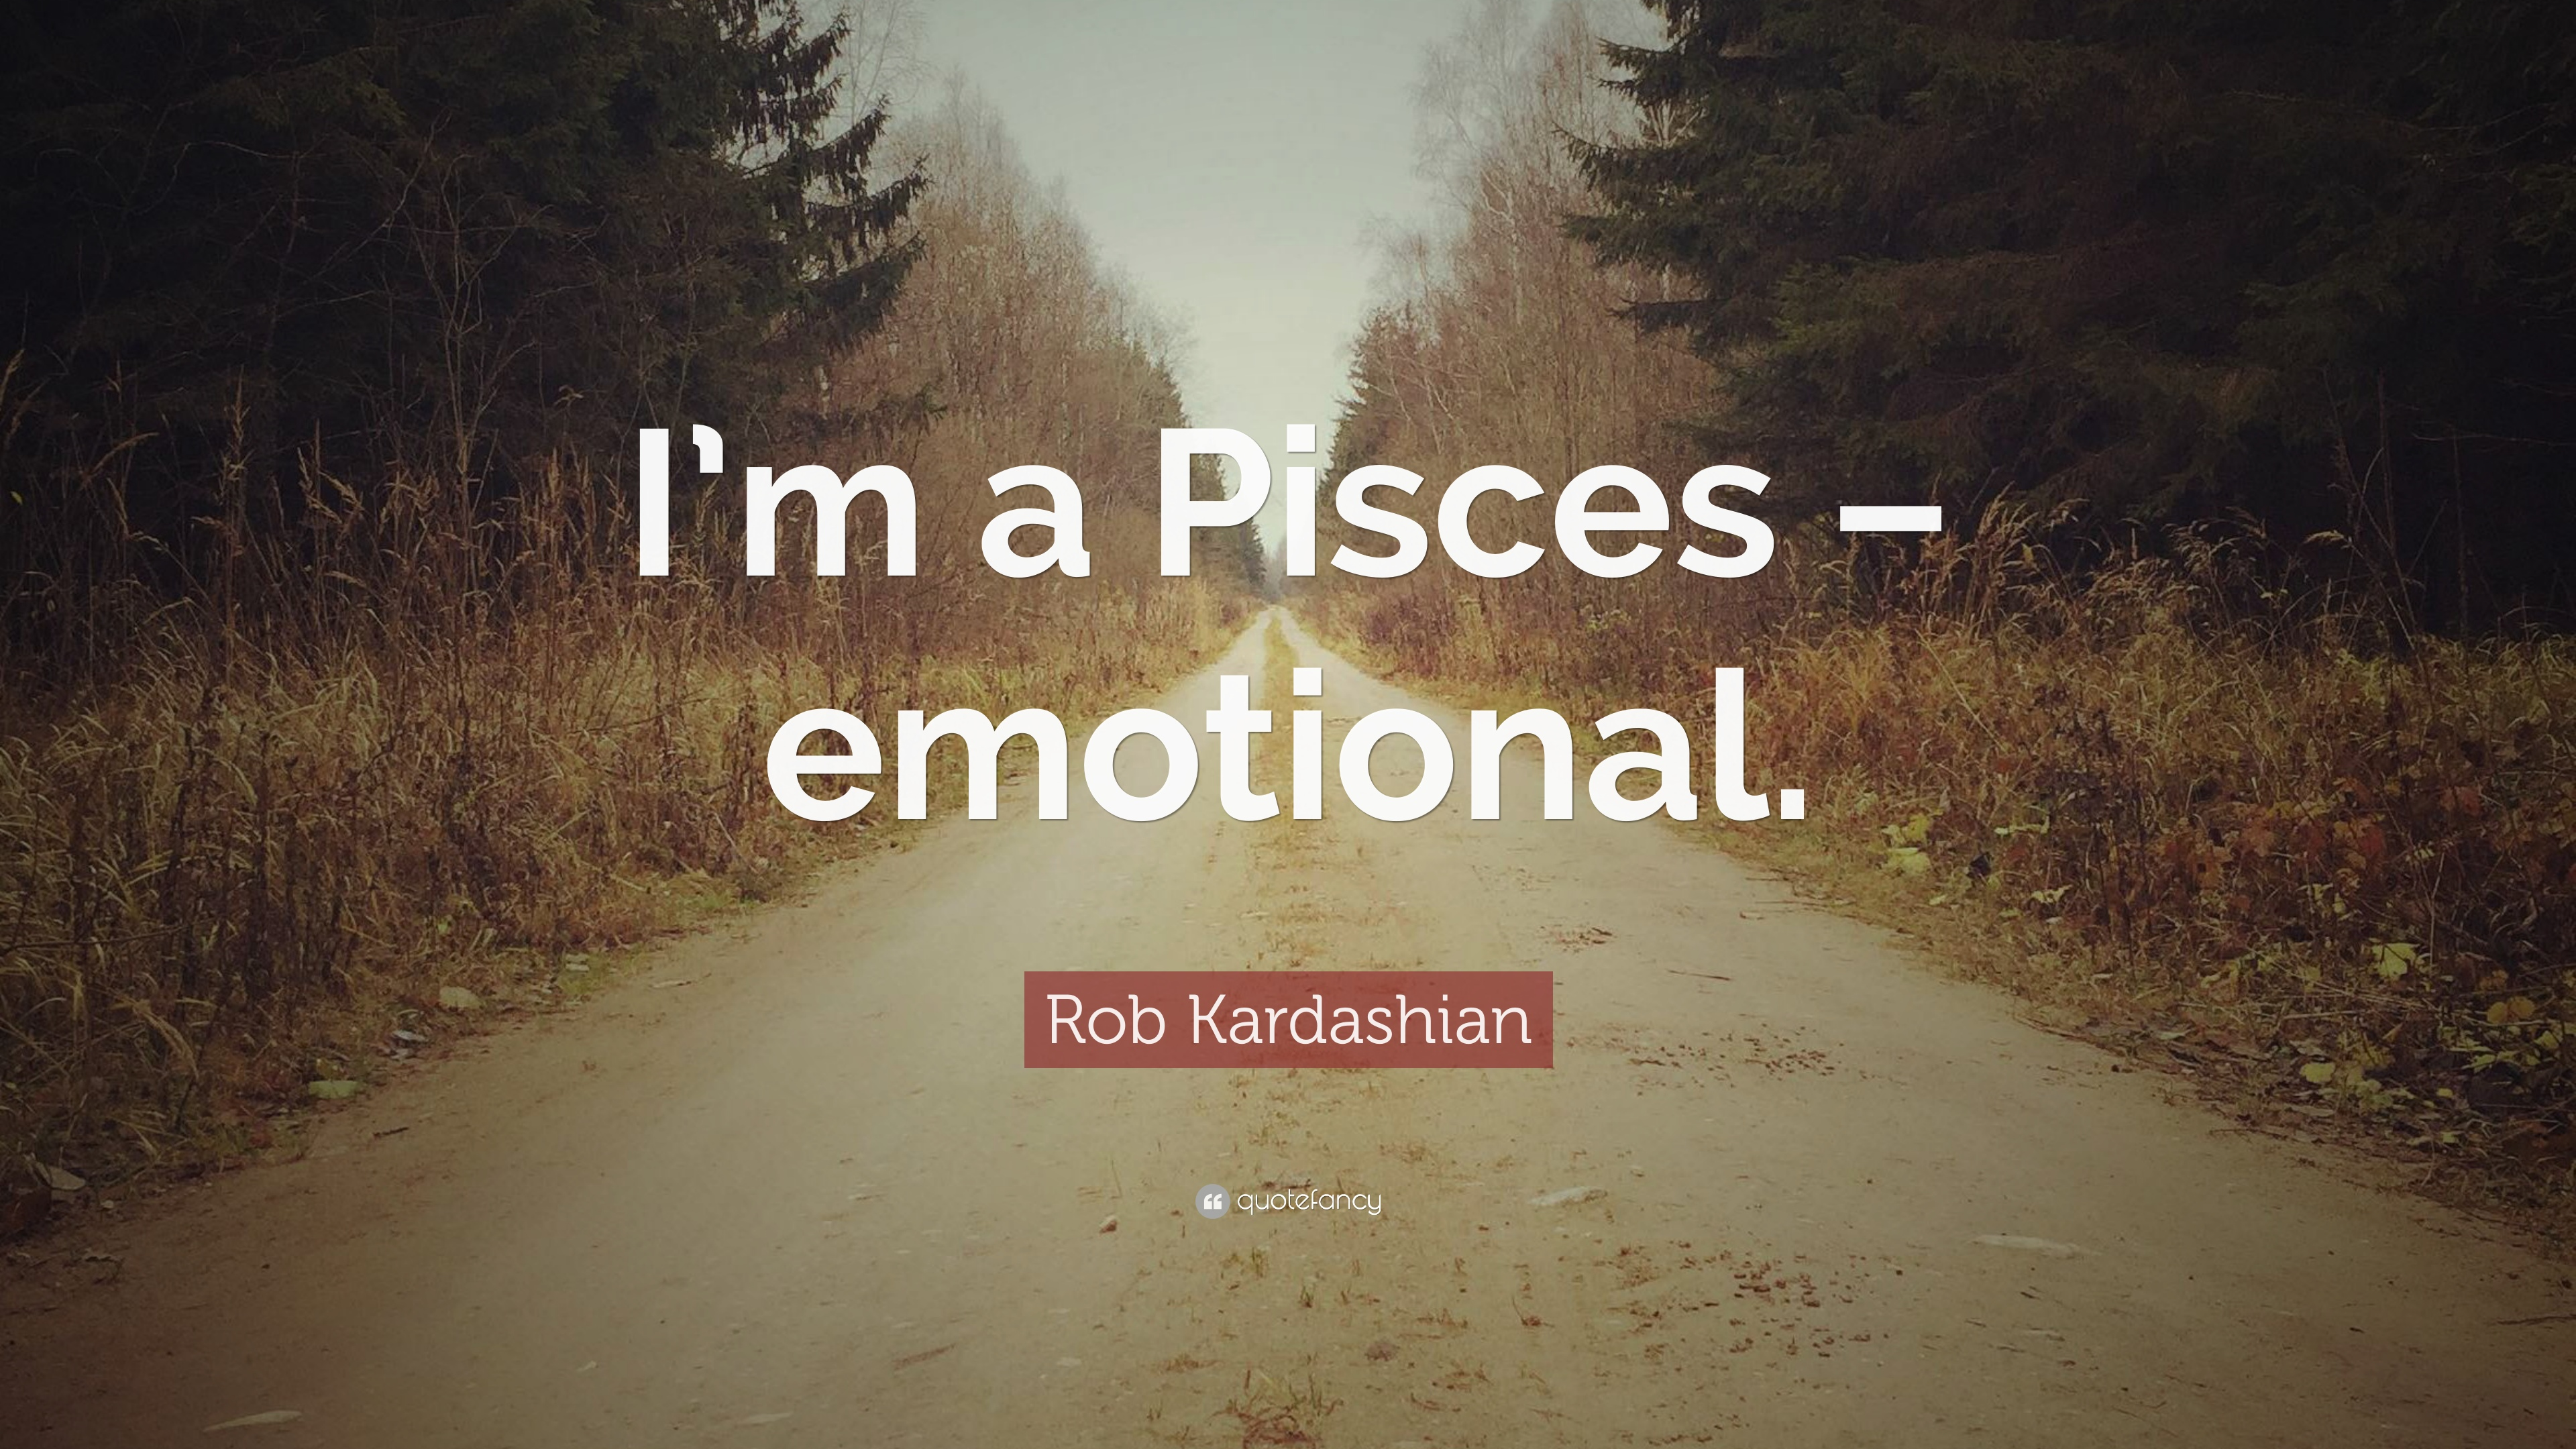 Pisces Quotes Rob Kardashian Quotes 13 Wallpapers  Quotefancy